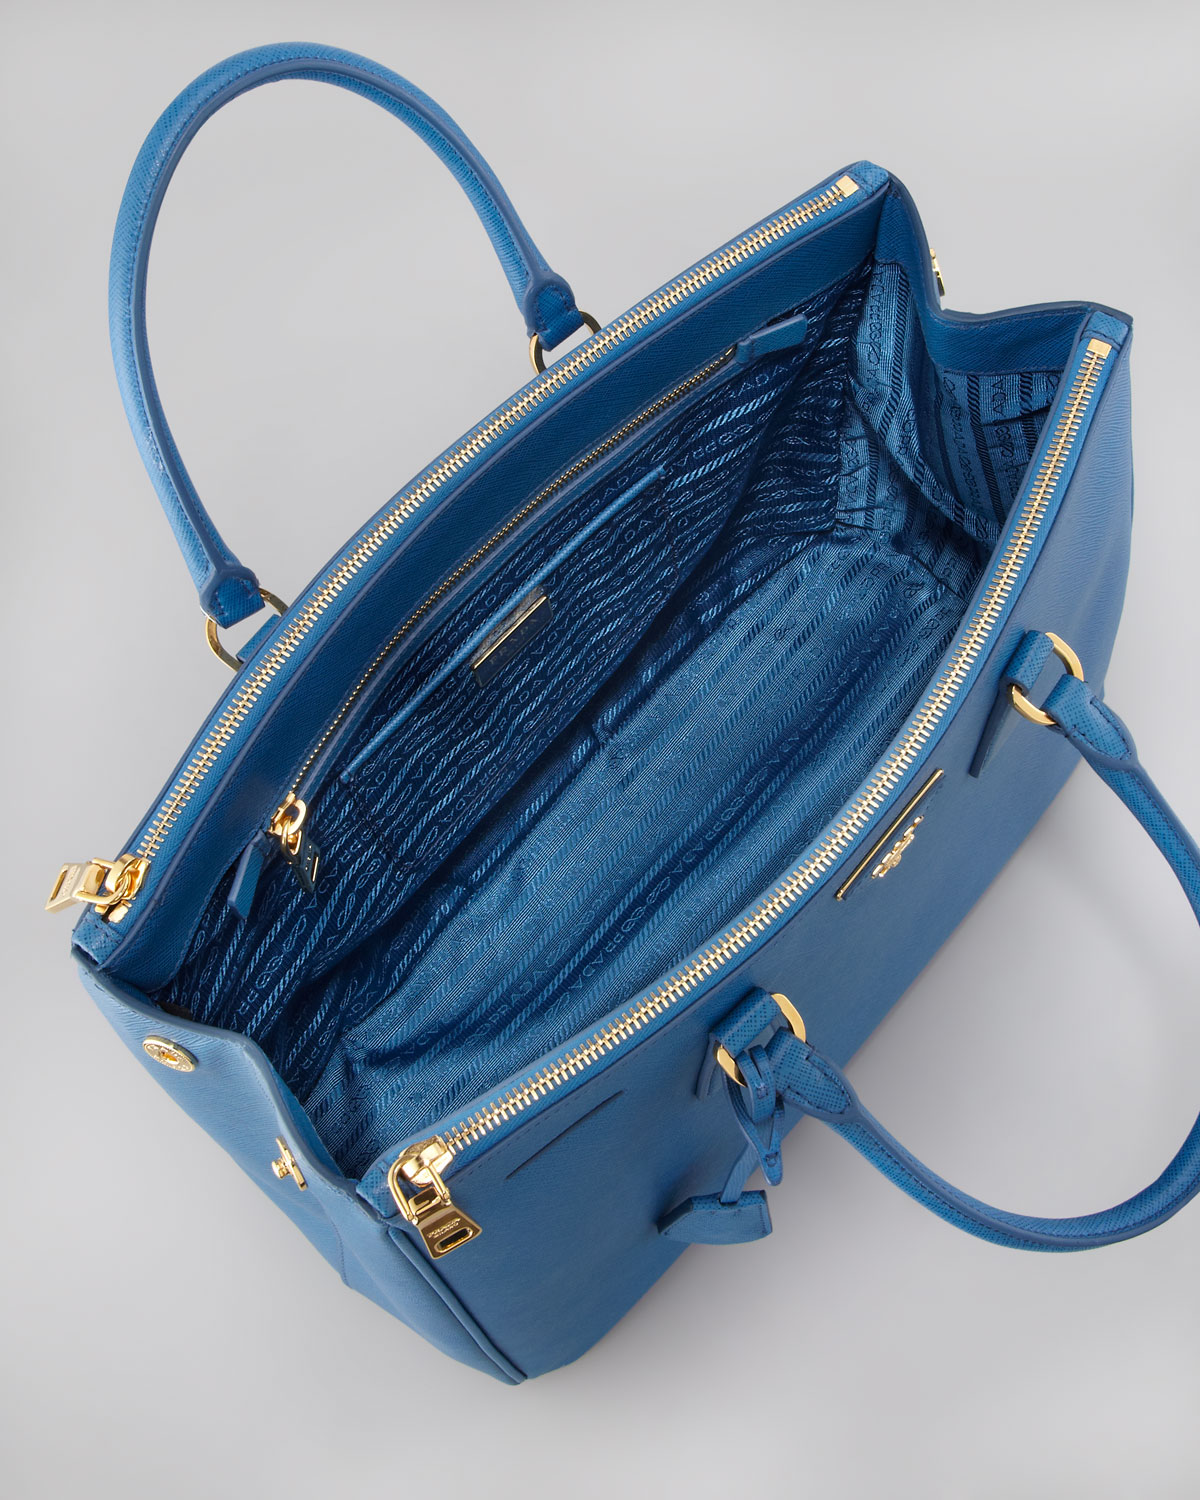 Prada Saffiano Executive Tote Bag Cobalto in Blue (cobalto) | Lyst